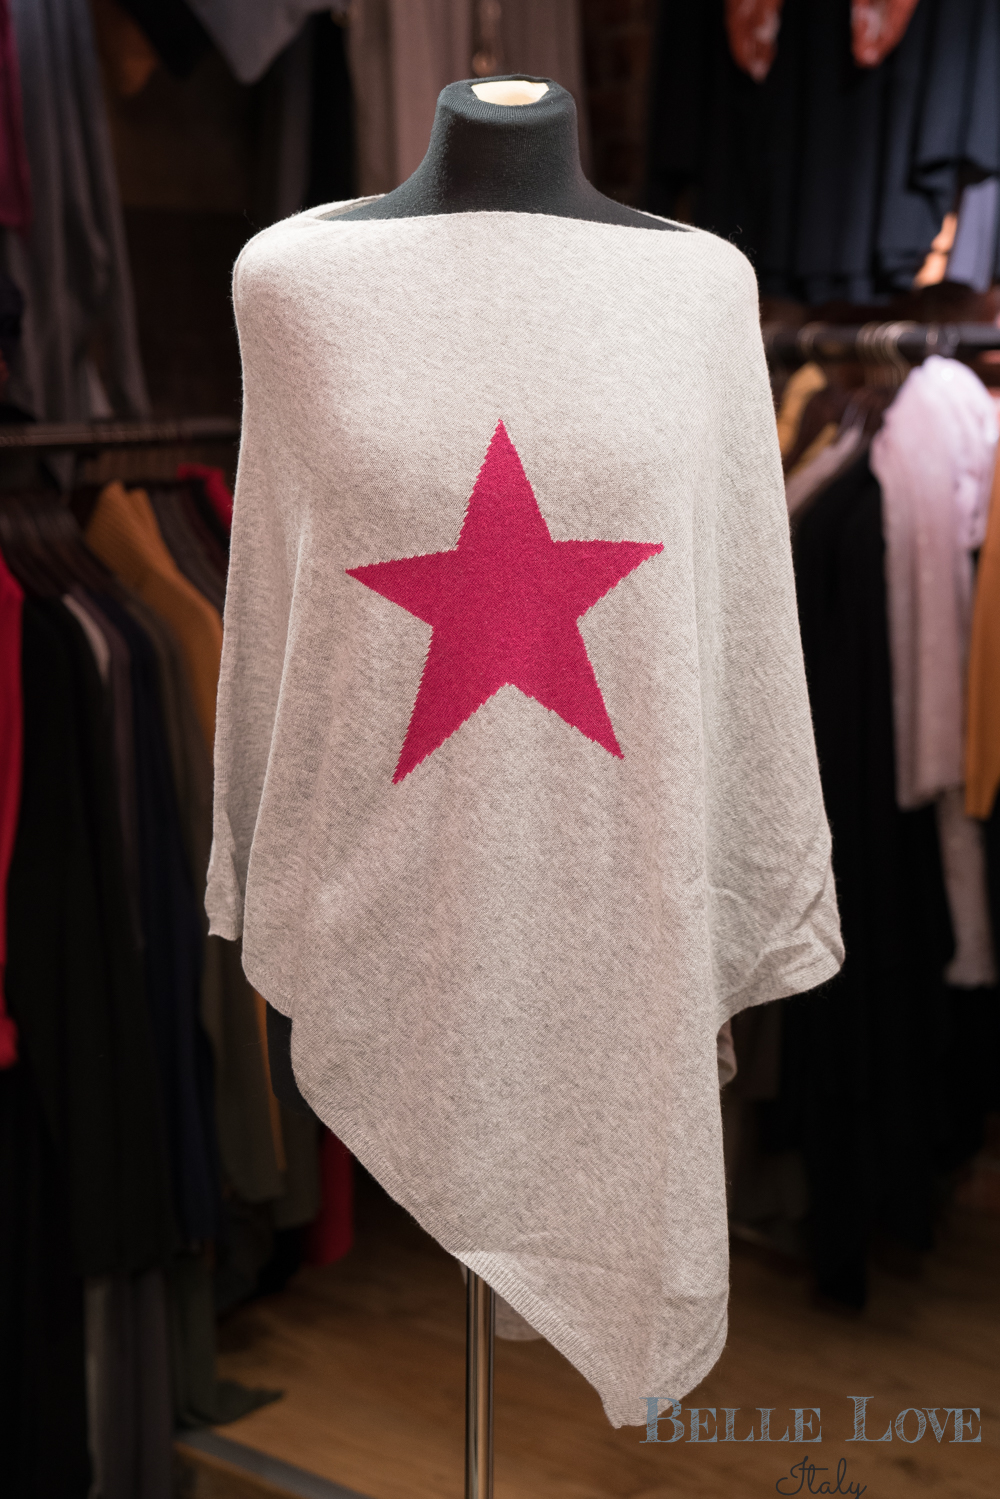 Belle love Italy Cashmere Star Poncho